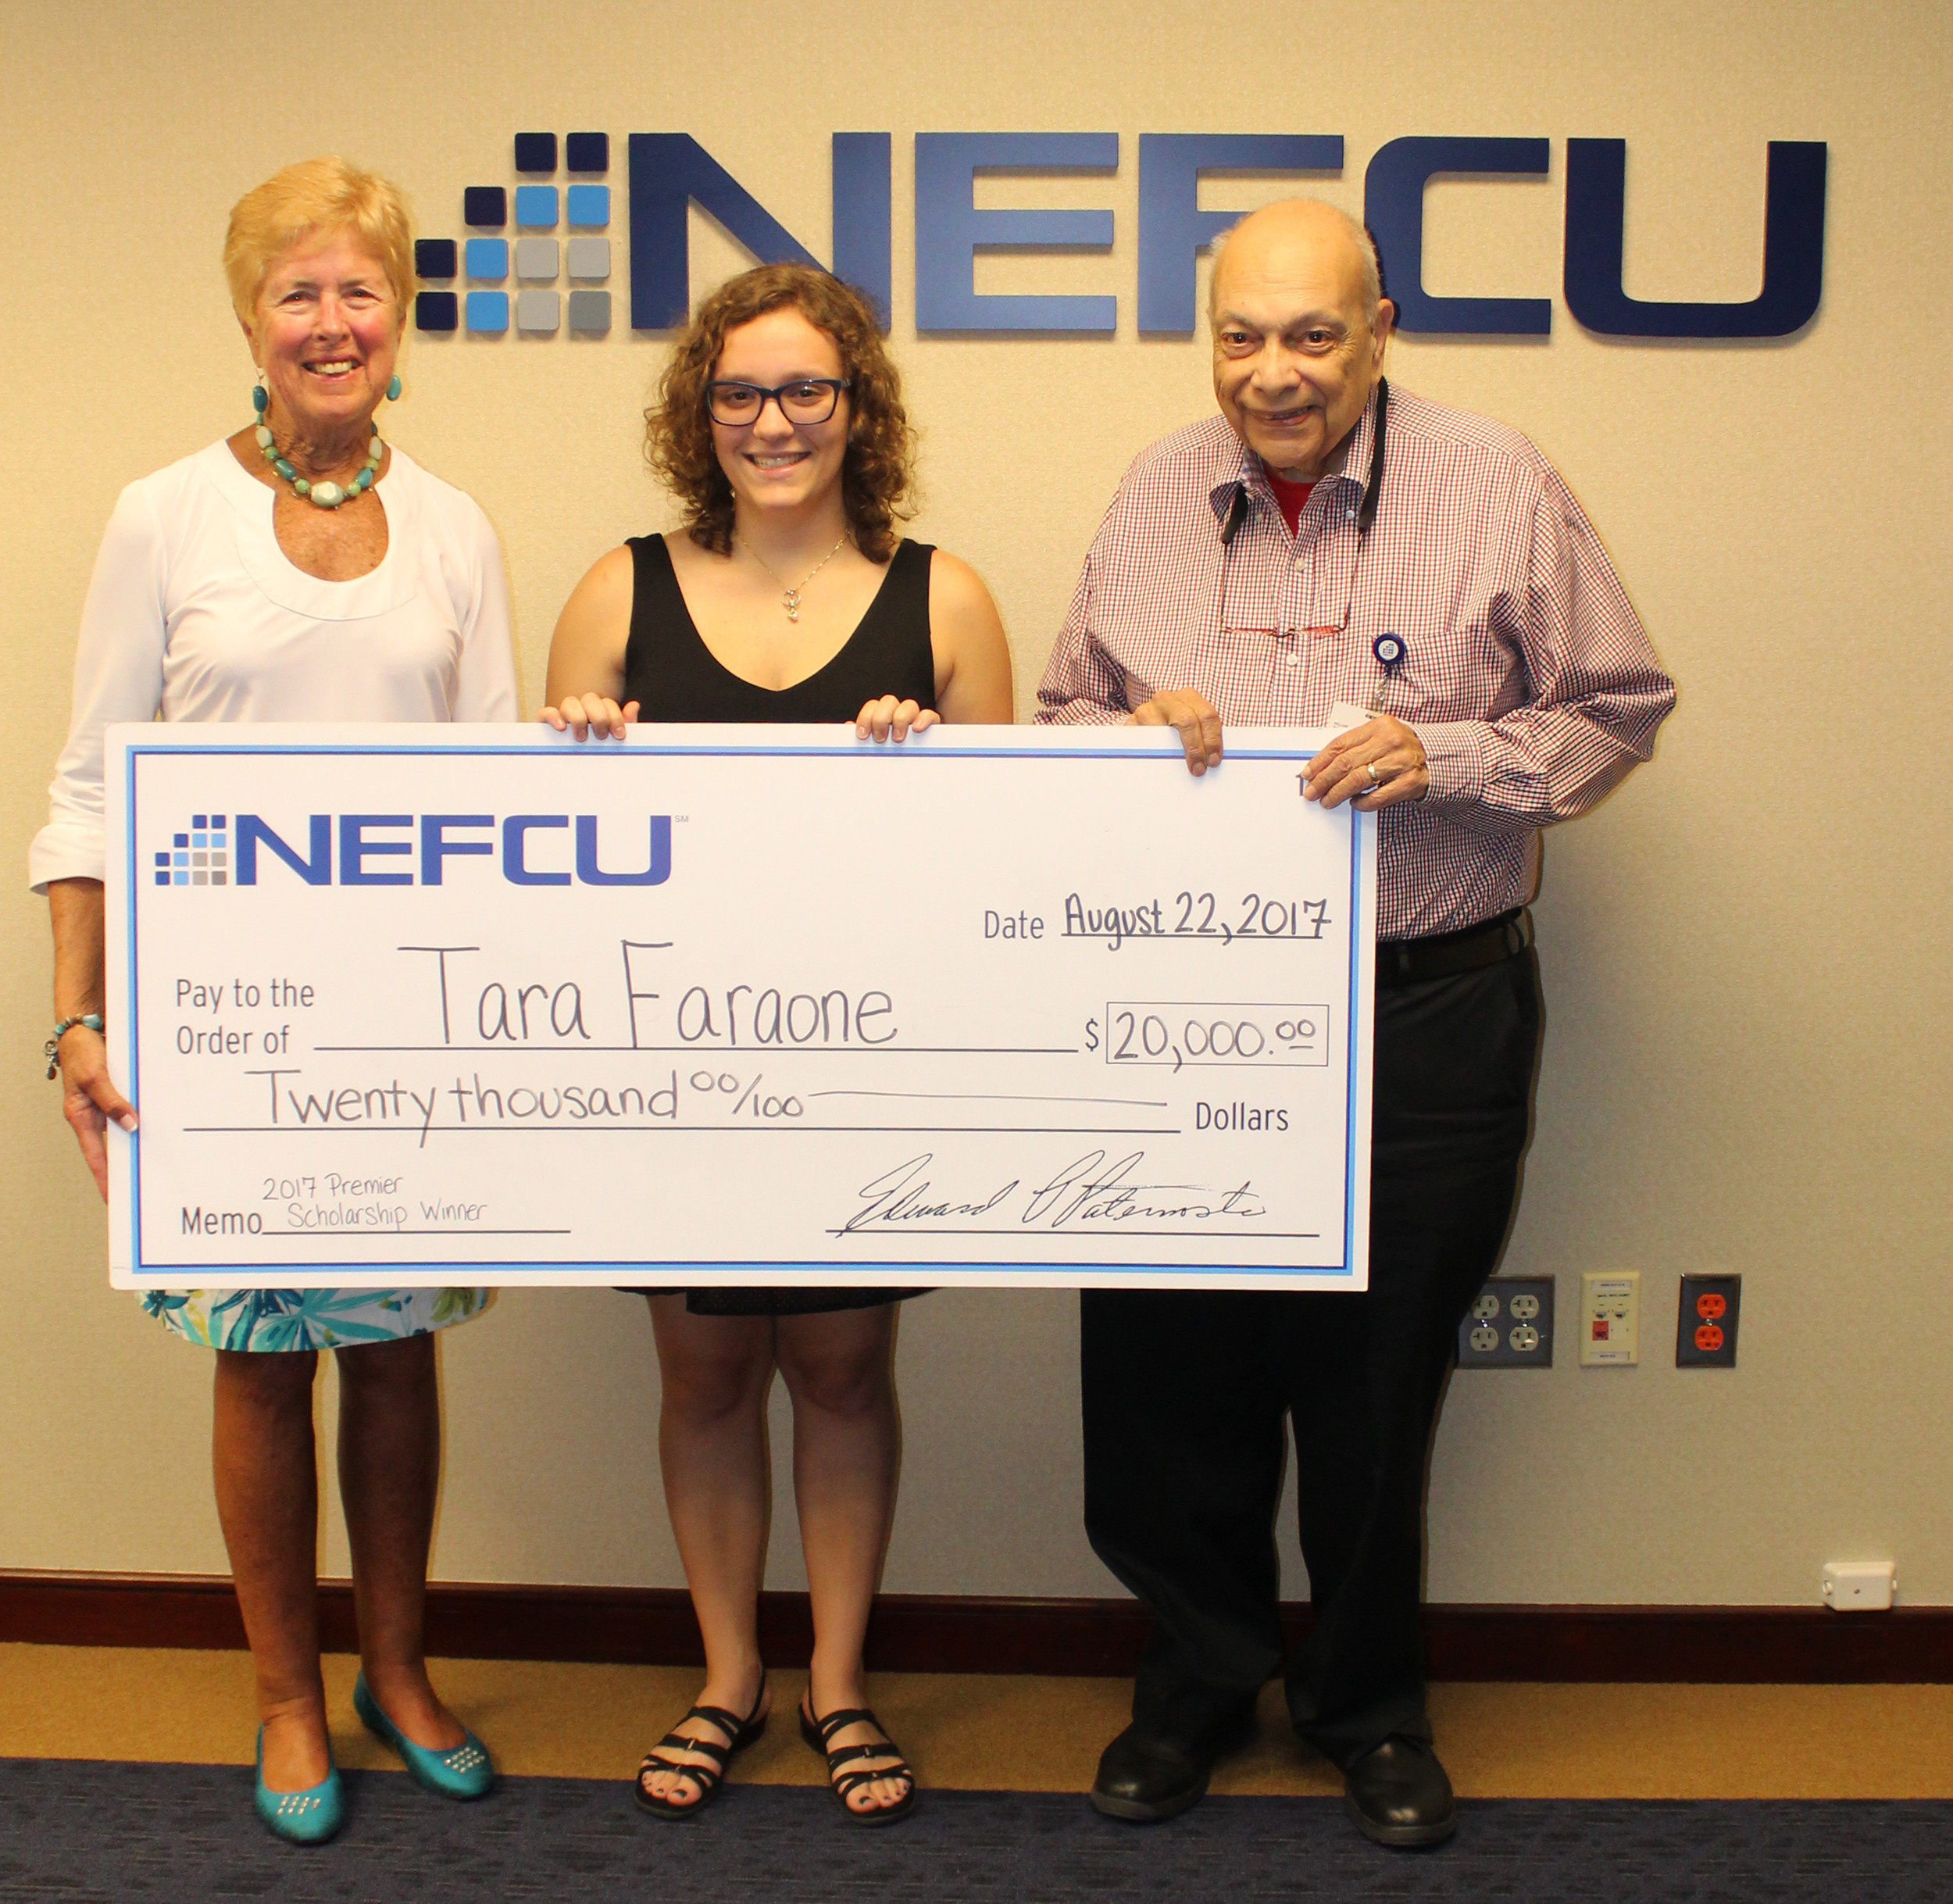 Courtesy NECFU